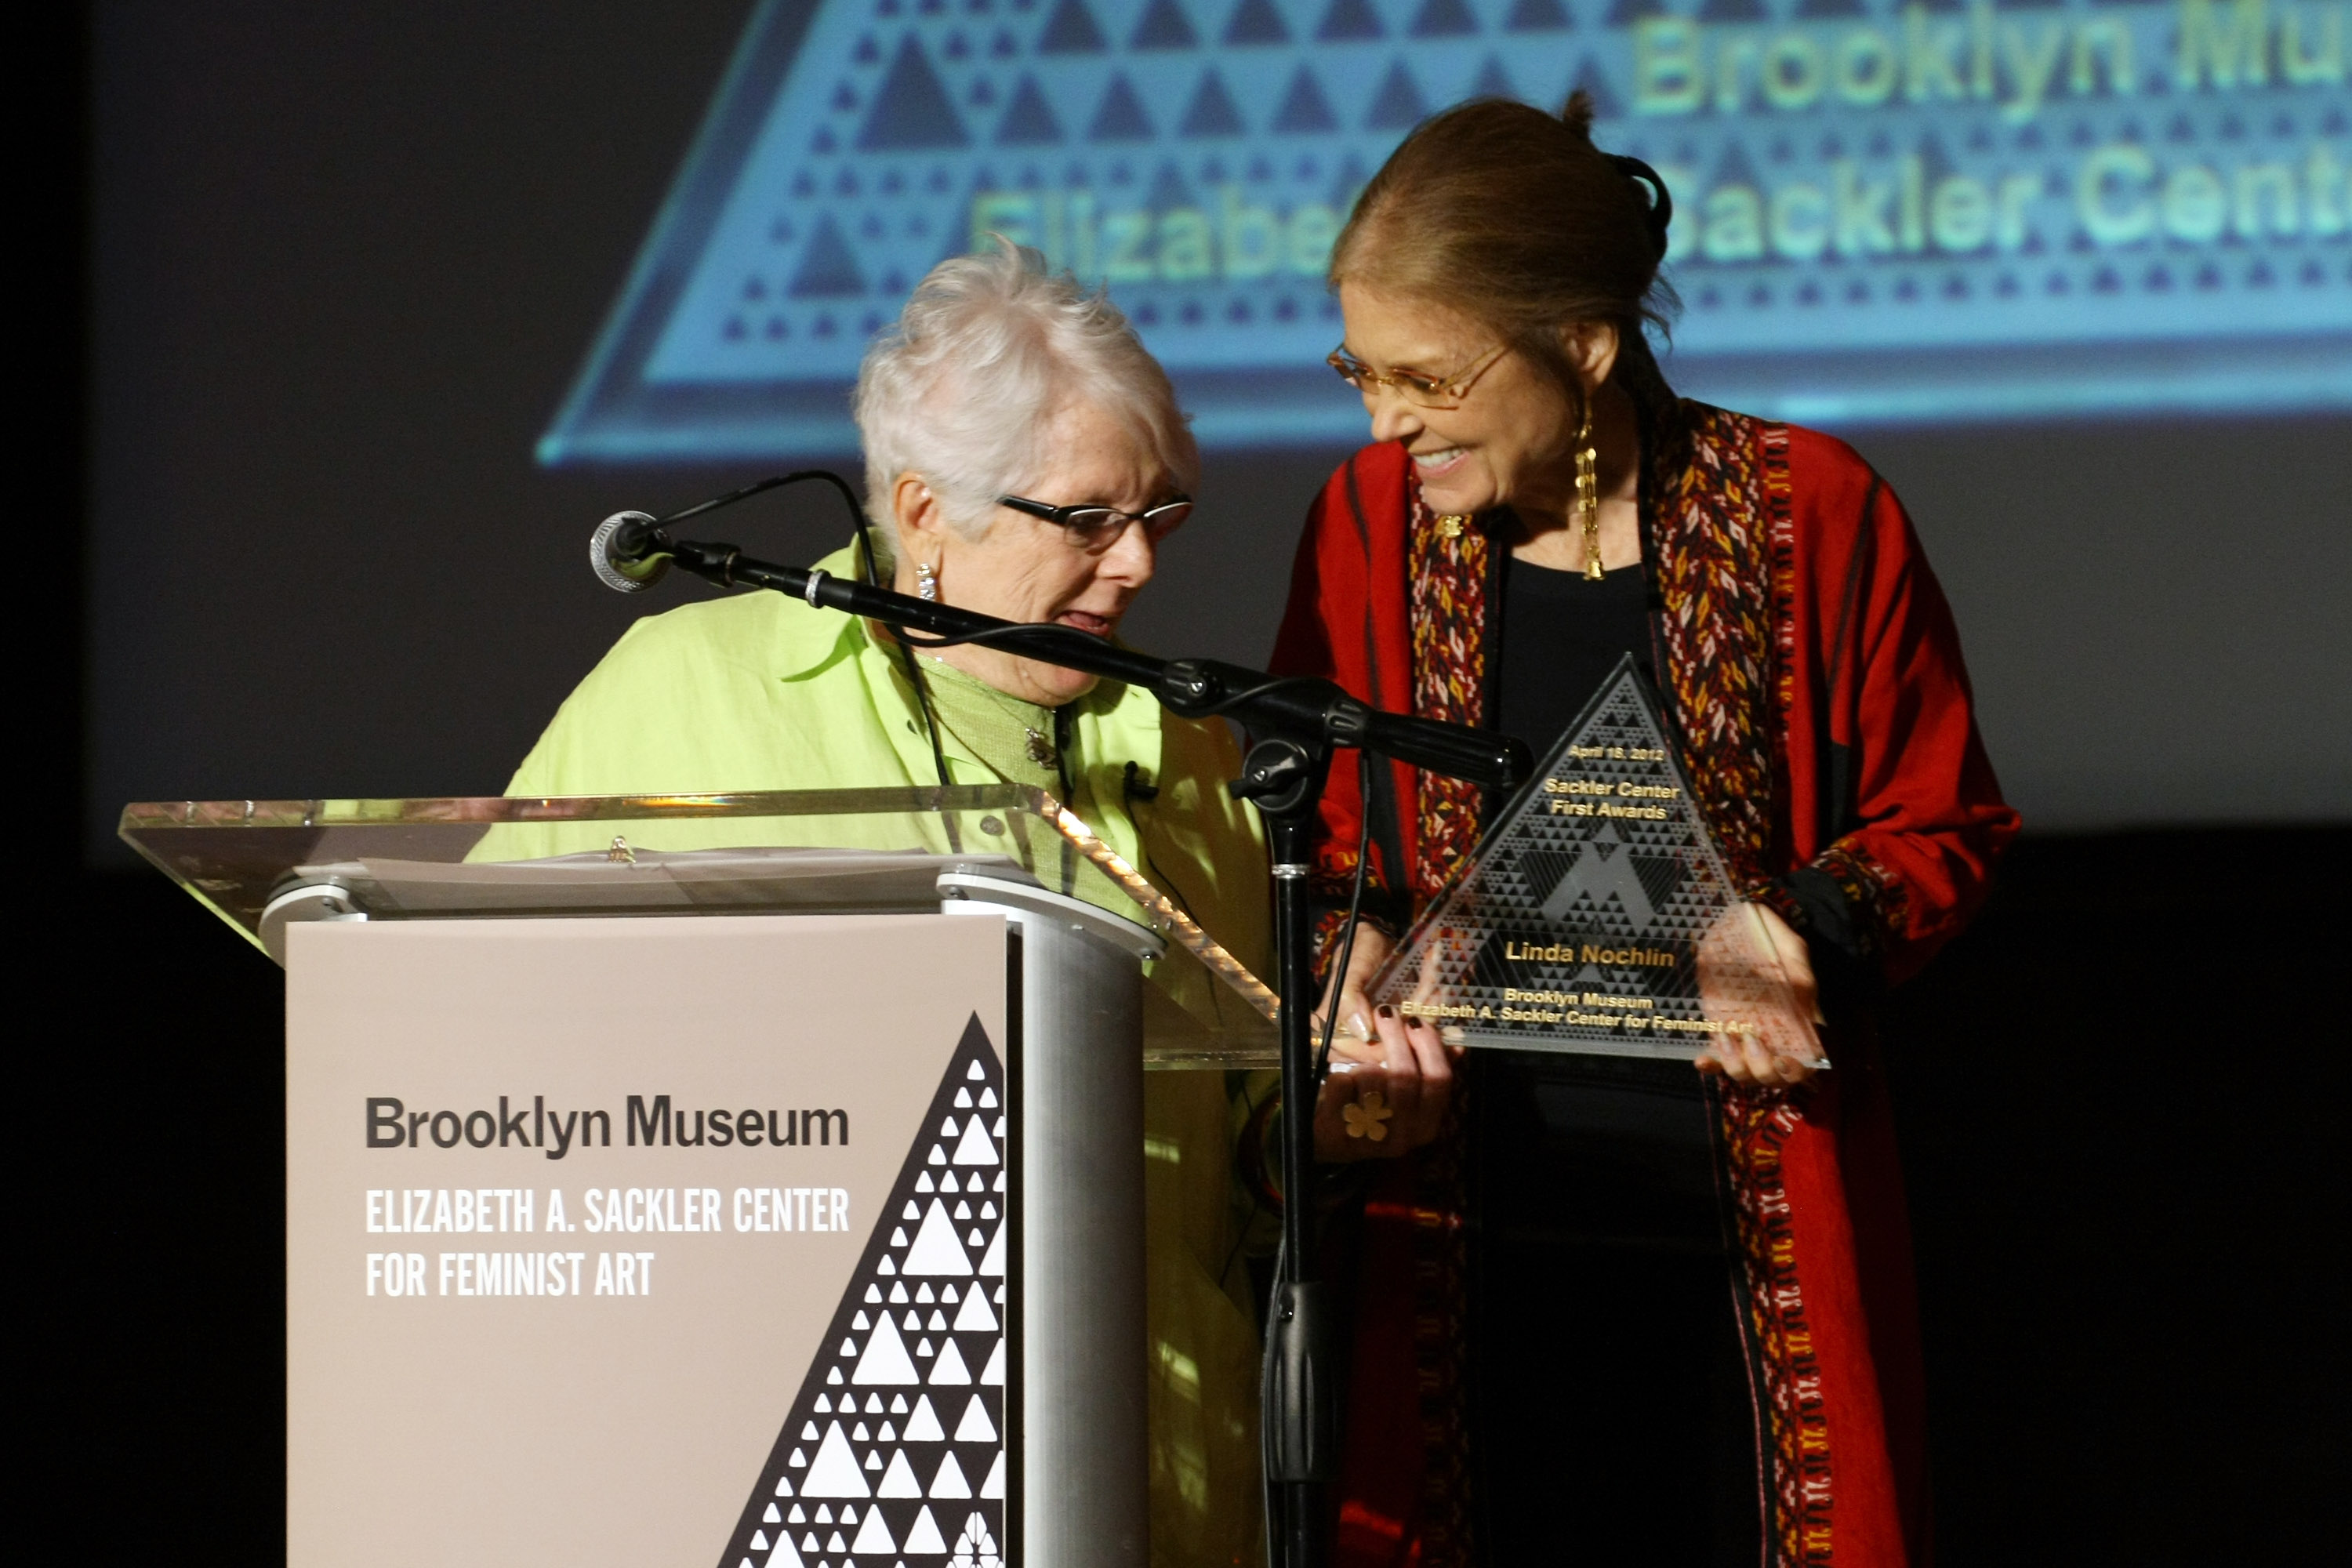 Art historian and honoree Linda Nochlin (L) is presented an award on stage by Gloria Steinem during the Brooklyn Museum's Sackler Center First Awards at the Brooklyn Museum on April 18, 2012 in the Brooklyn borough of New York City. (Photo by Neilson Barnard/Getty Images)